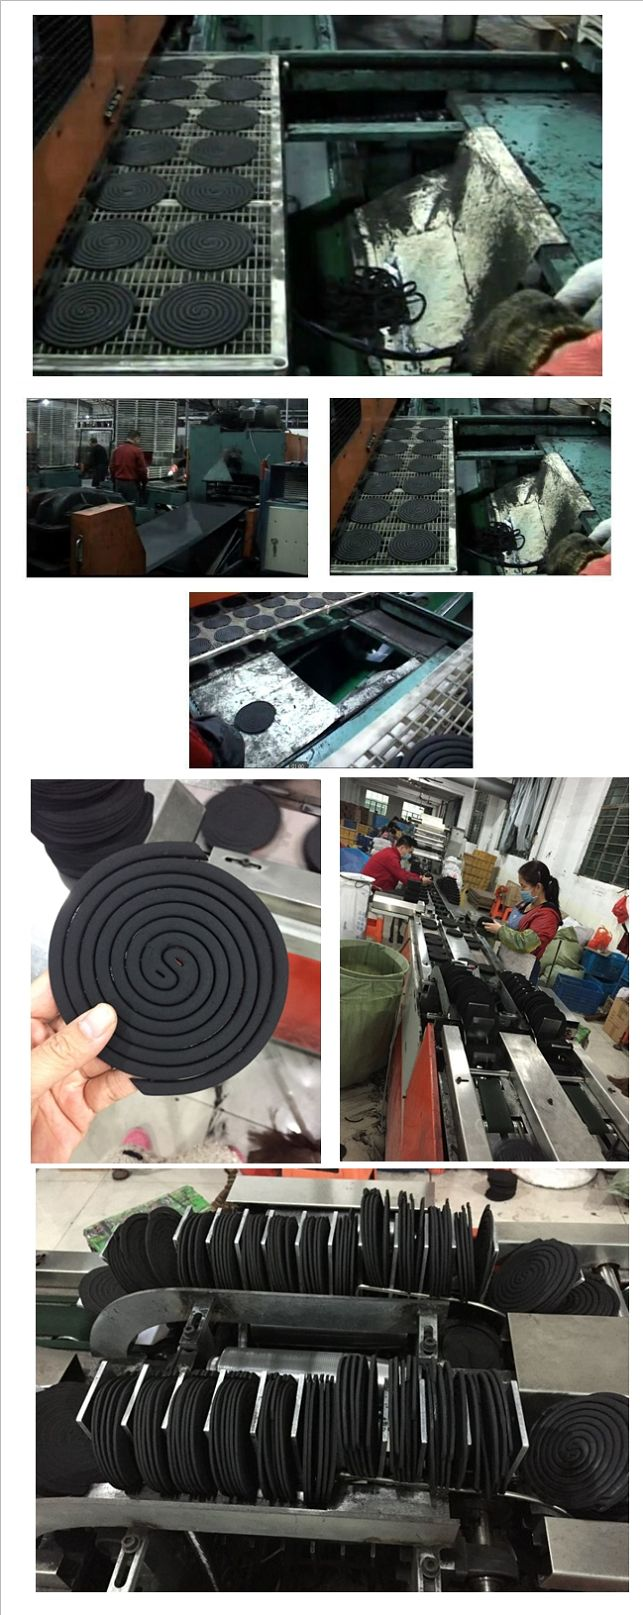 125mm 130mm 140mm 147mm Rad Factory Brand Mosquito Coil Repellent Killer China Supper OEM